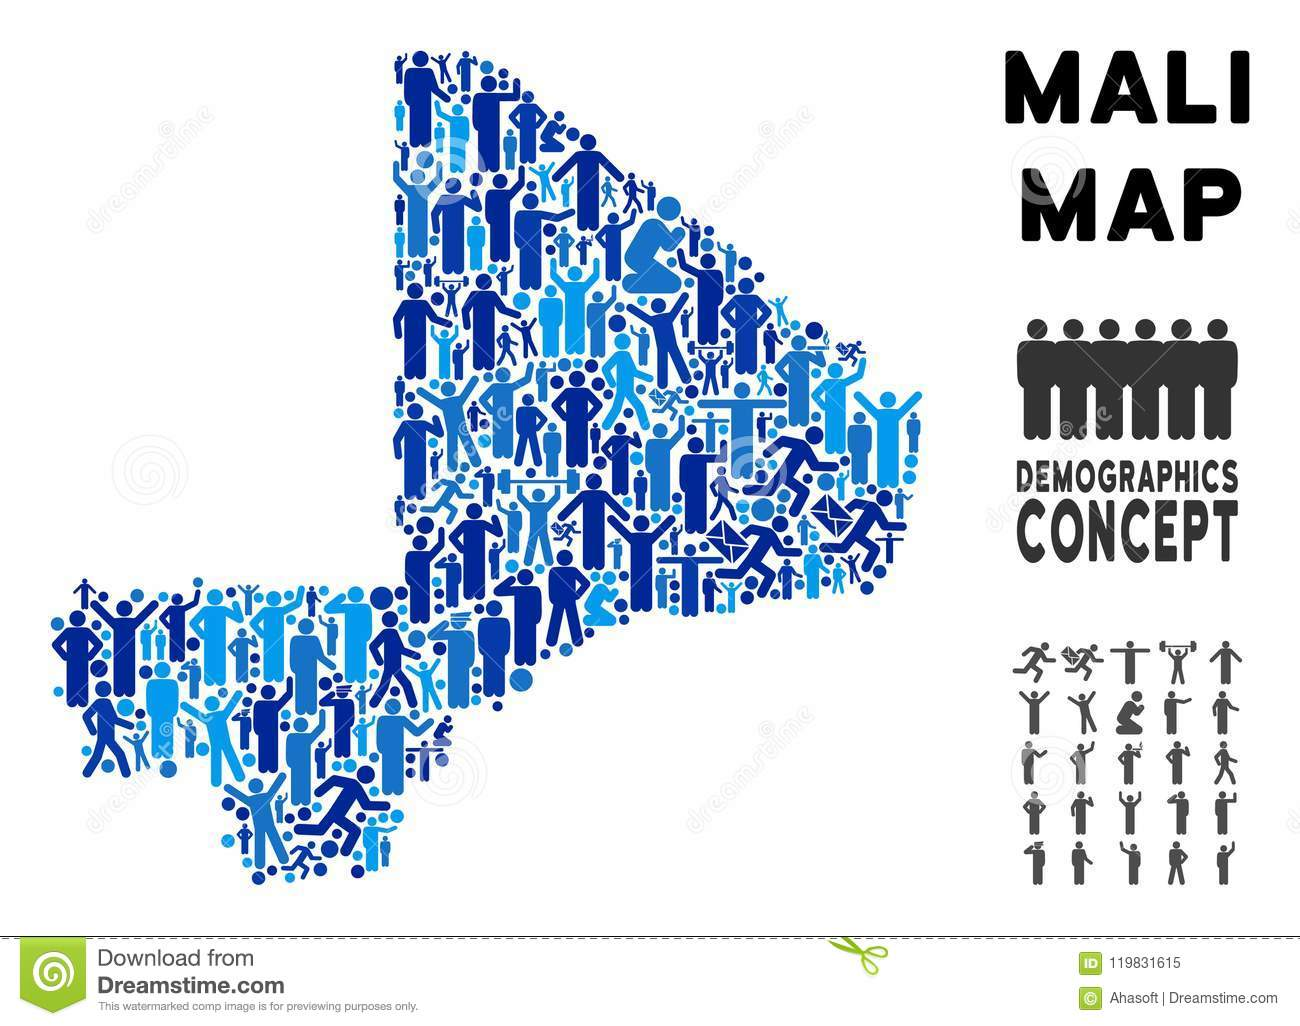 Demographics Mali Map